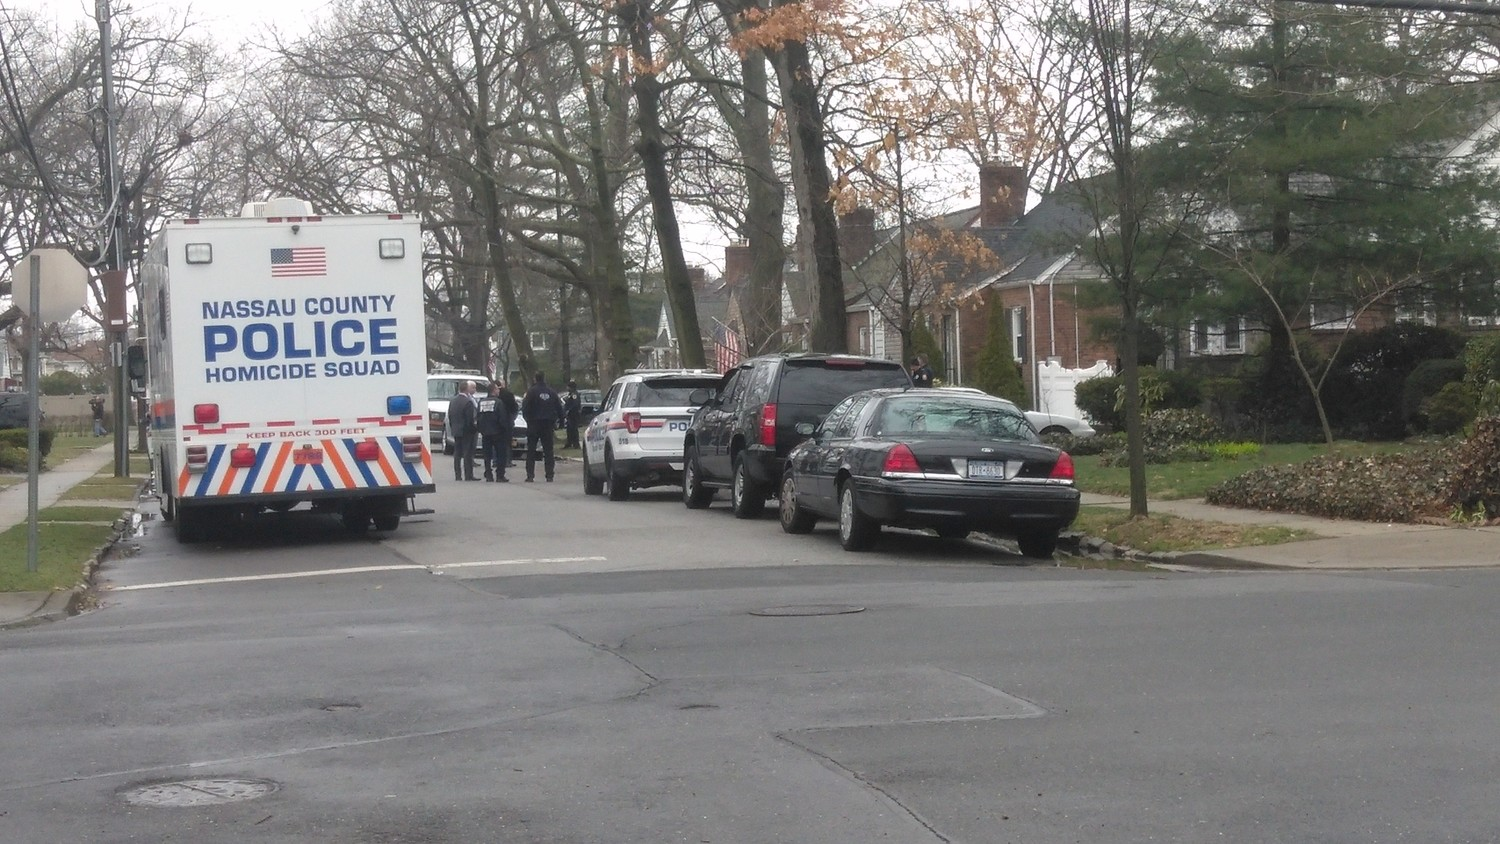 Nassau County police are investigating a homicide at 109 East Euclid Street